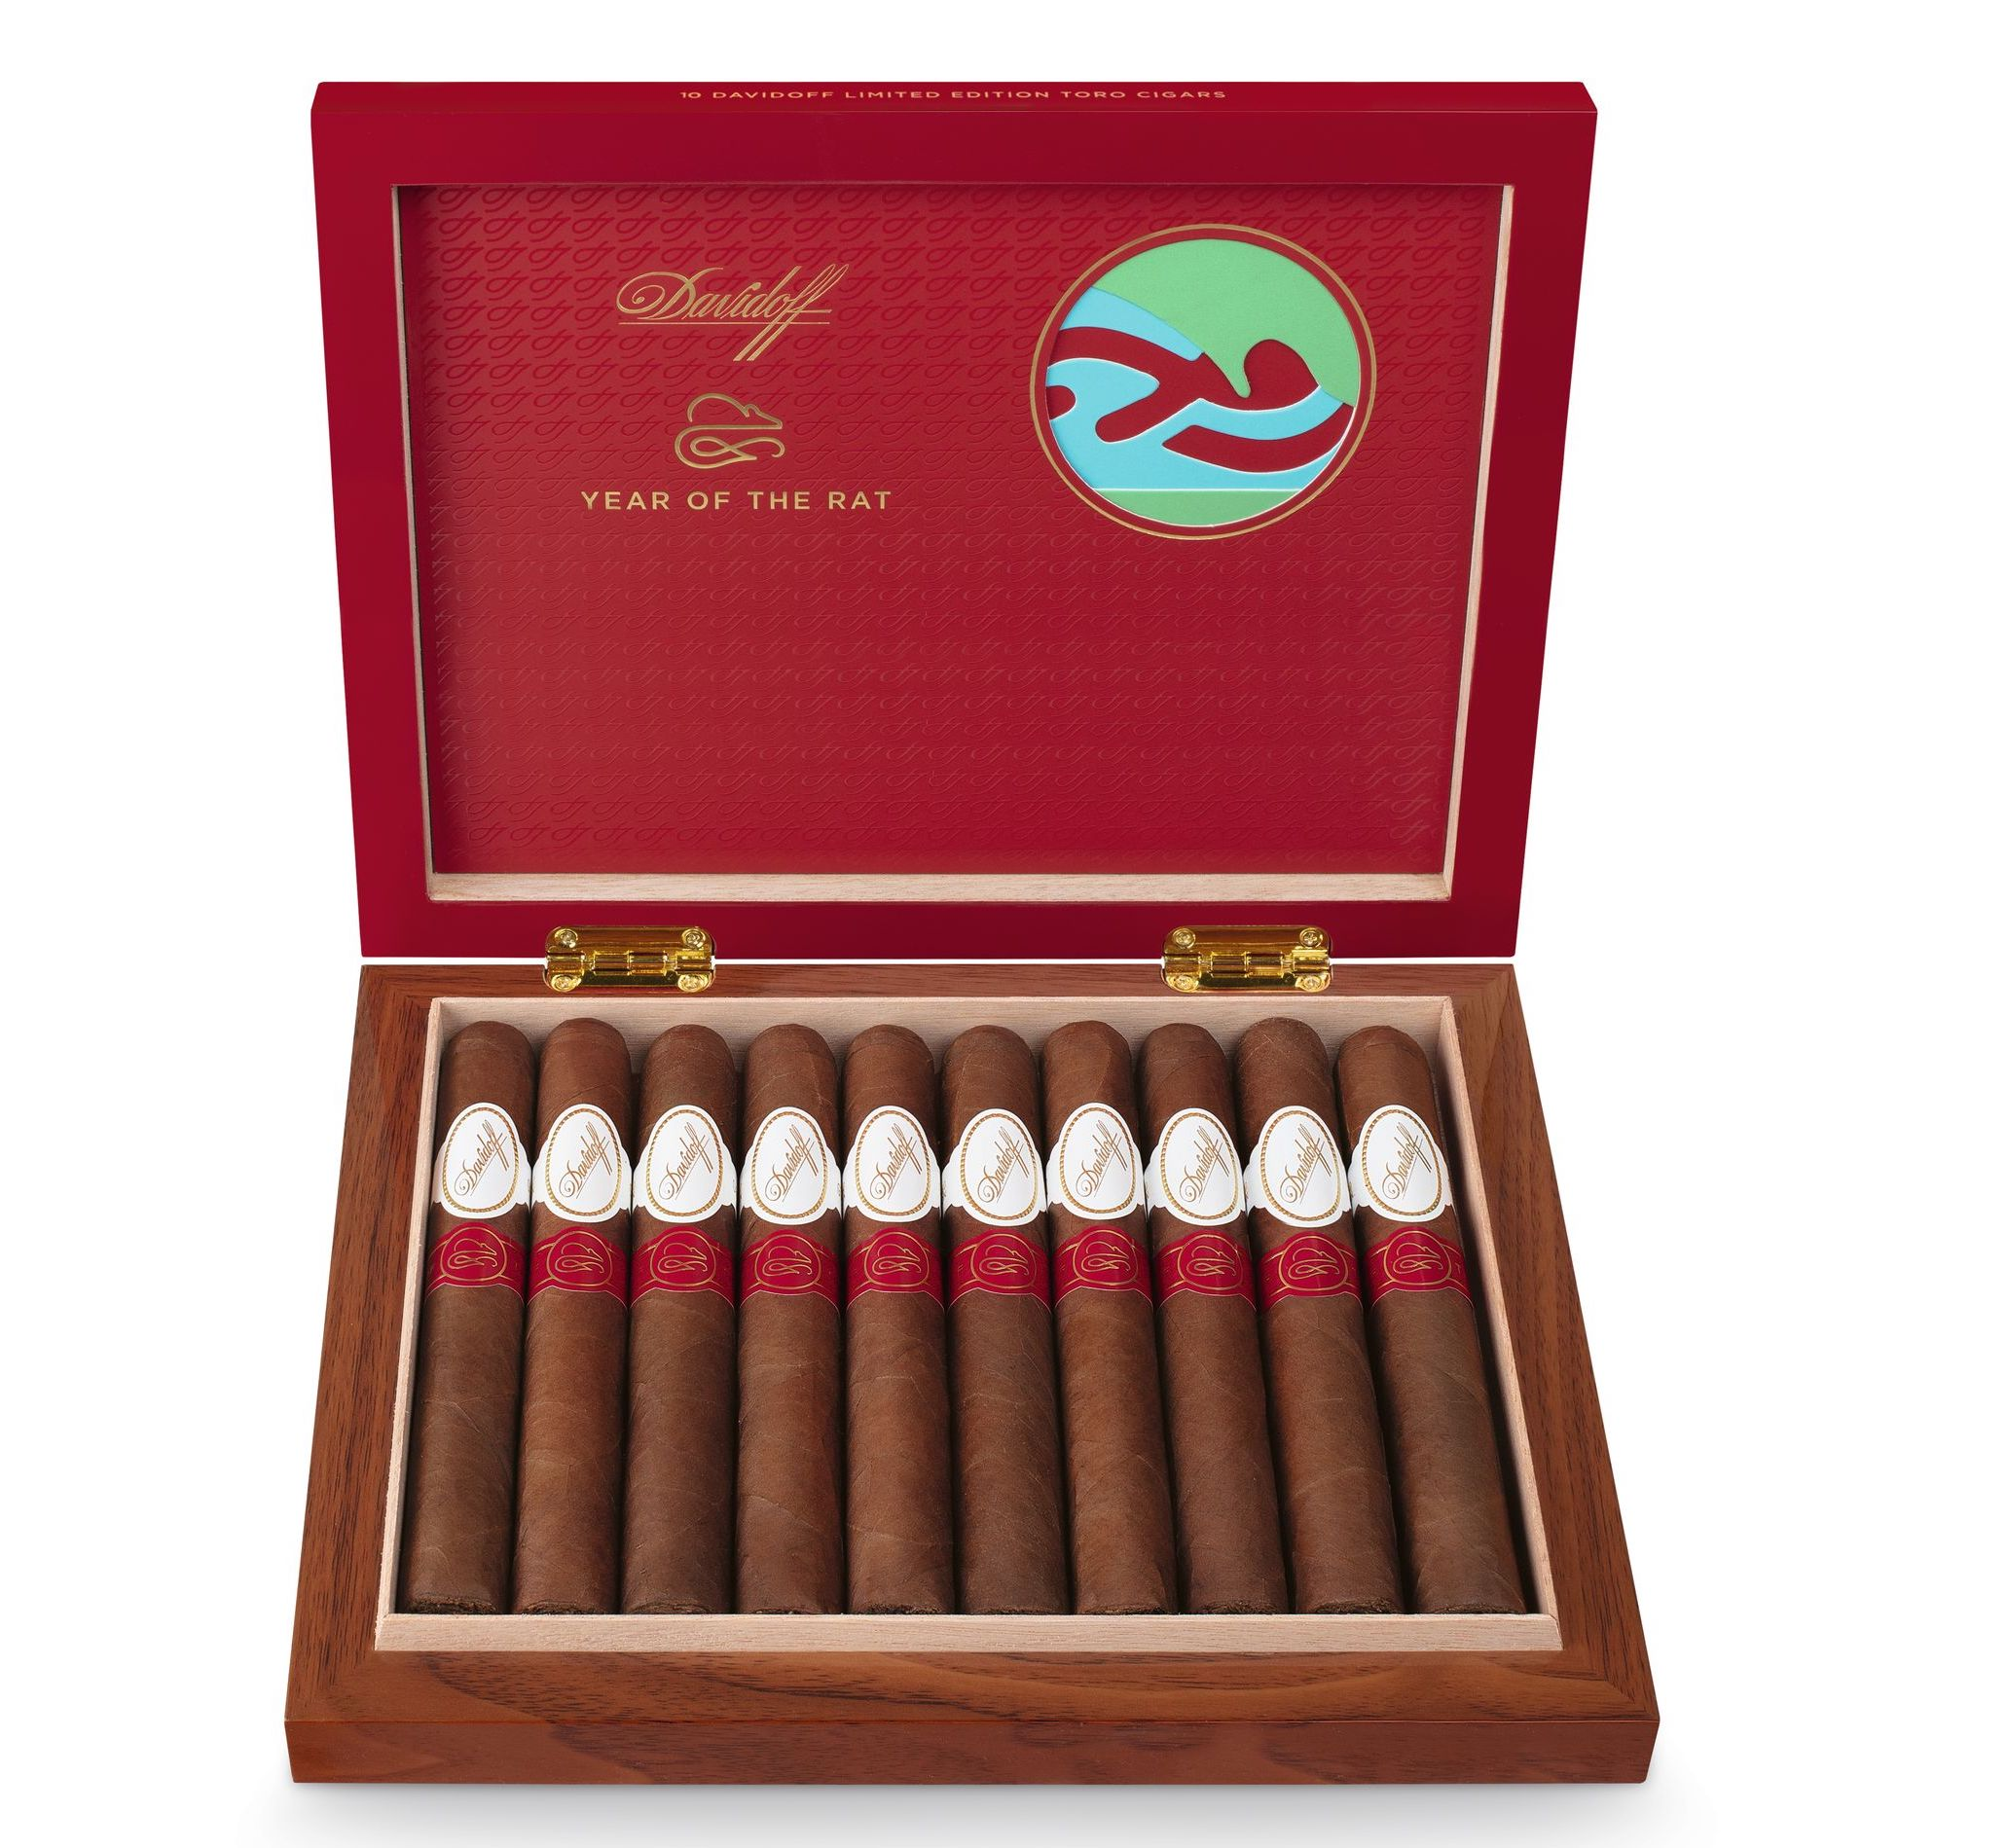 Cigar News: Davidoff Year of the Rat Limited Edition 2020 Announced